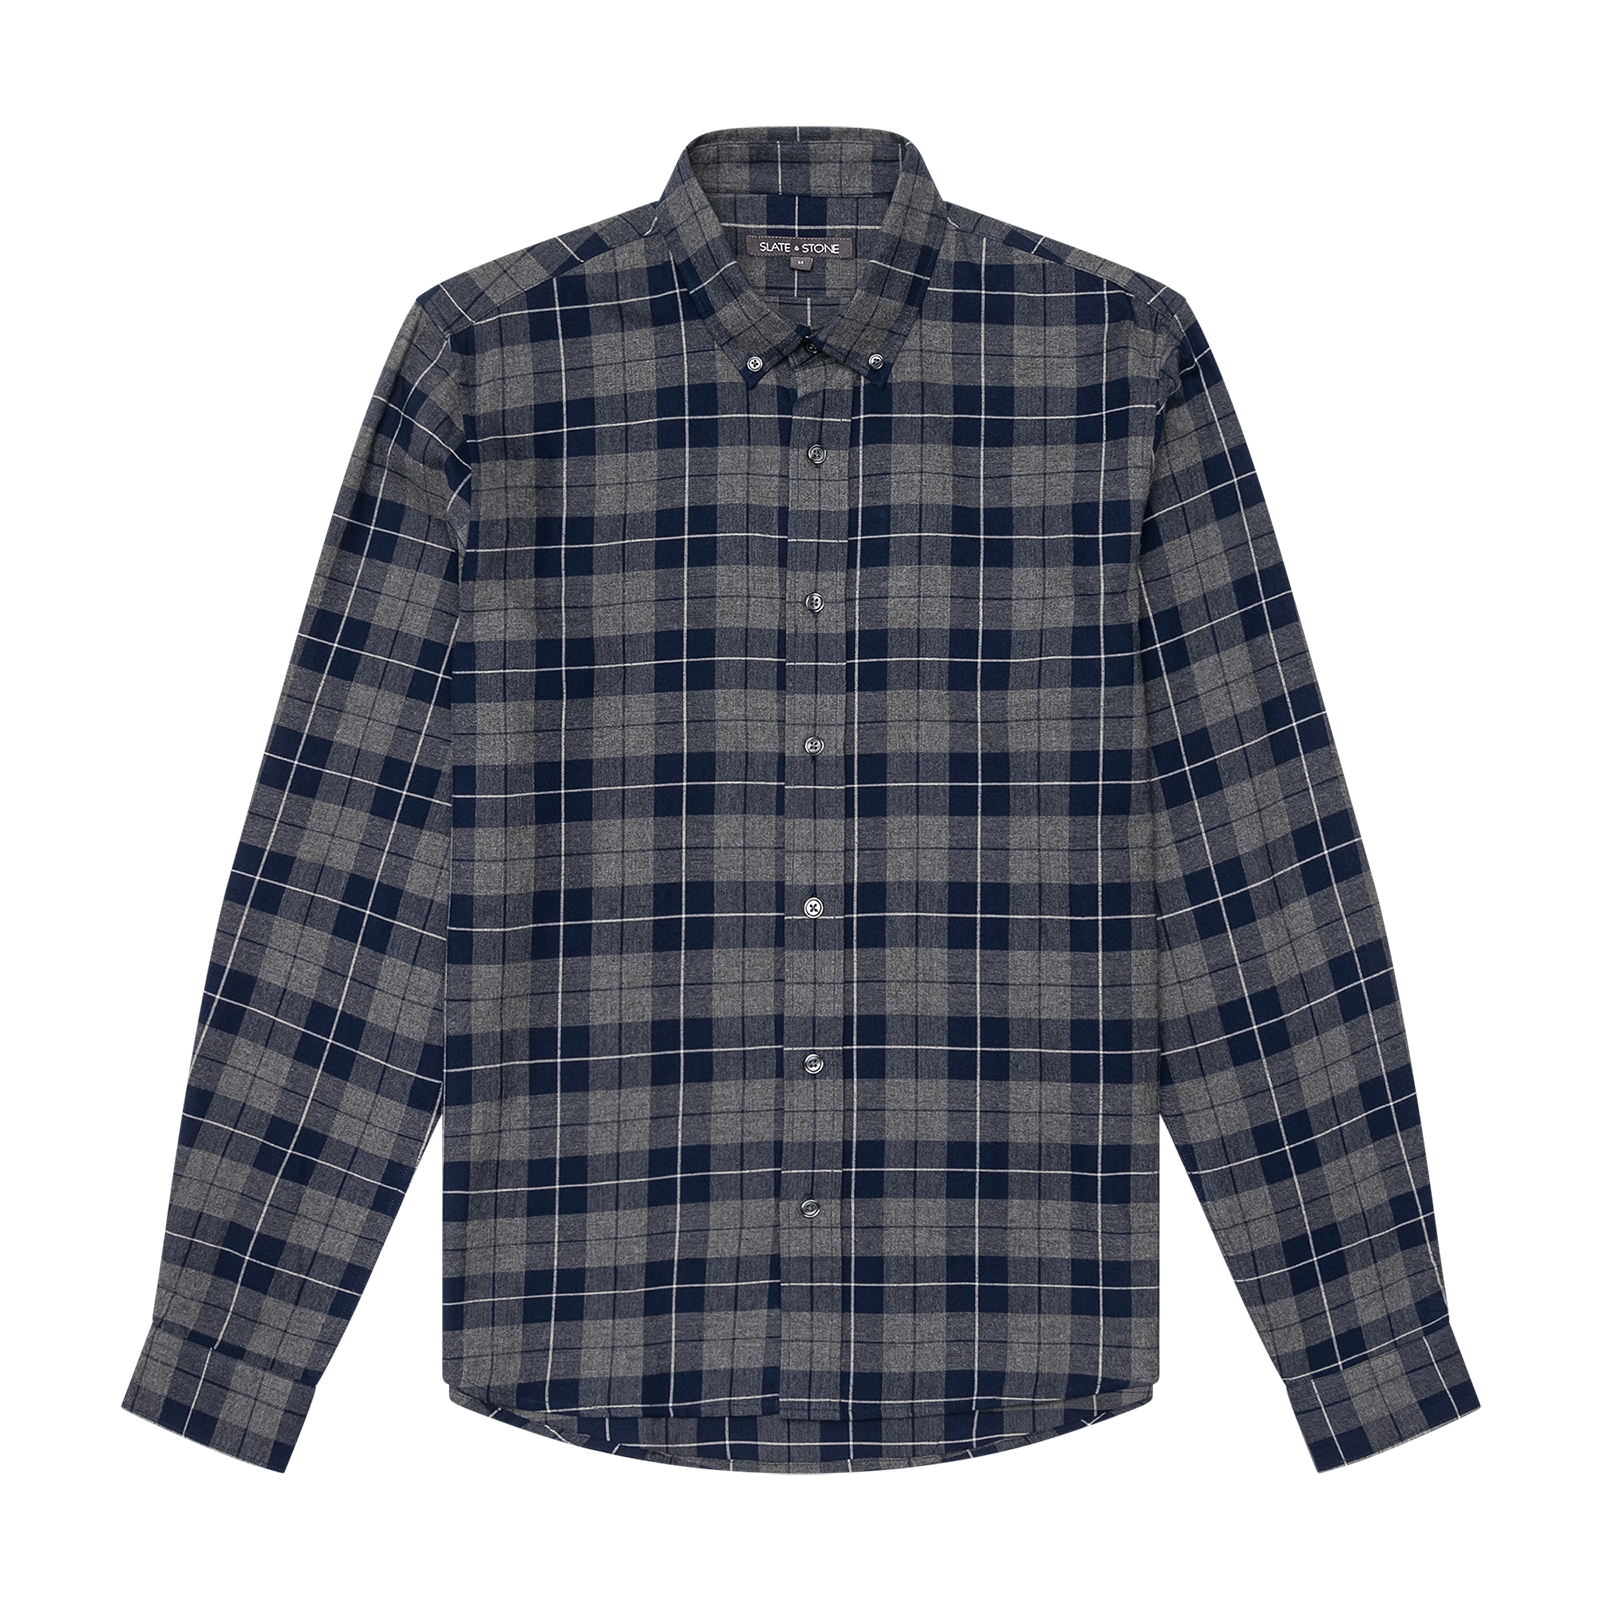 Flat lay shirt product picture